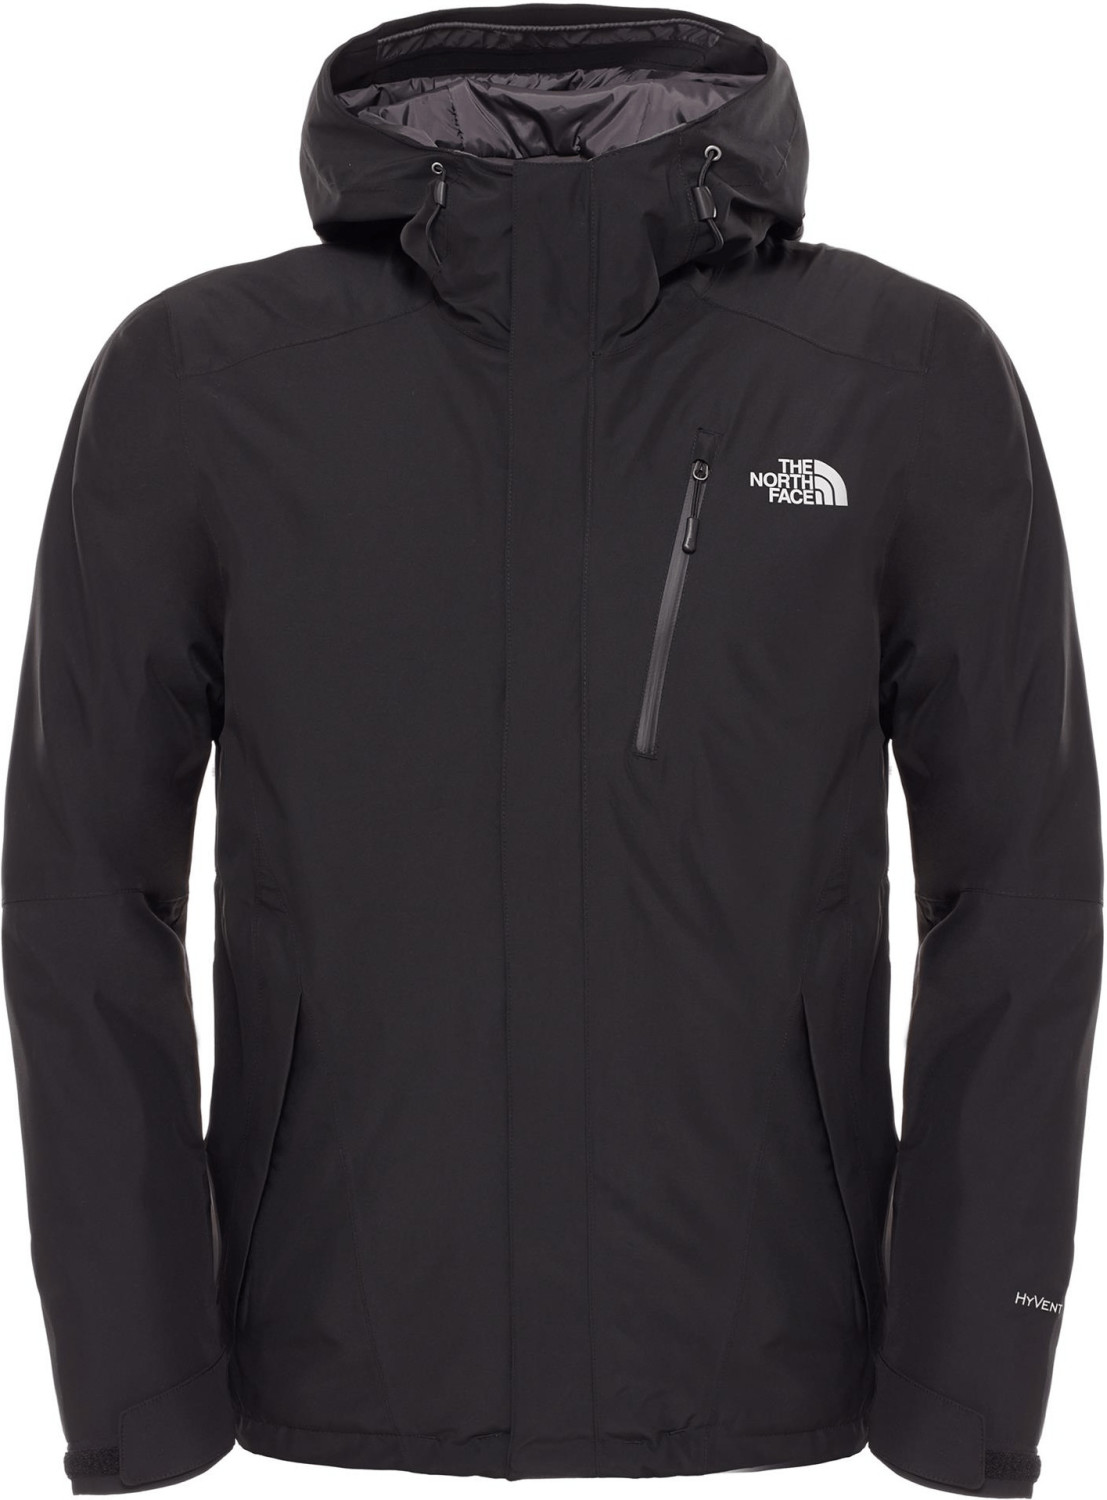 The North Face Herren Descendit Jacke